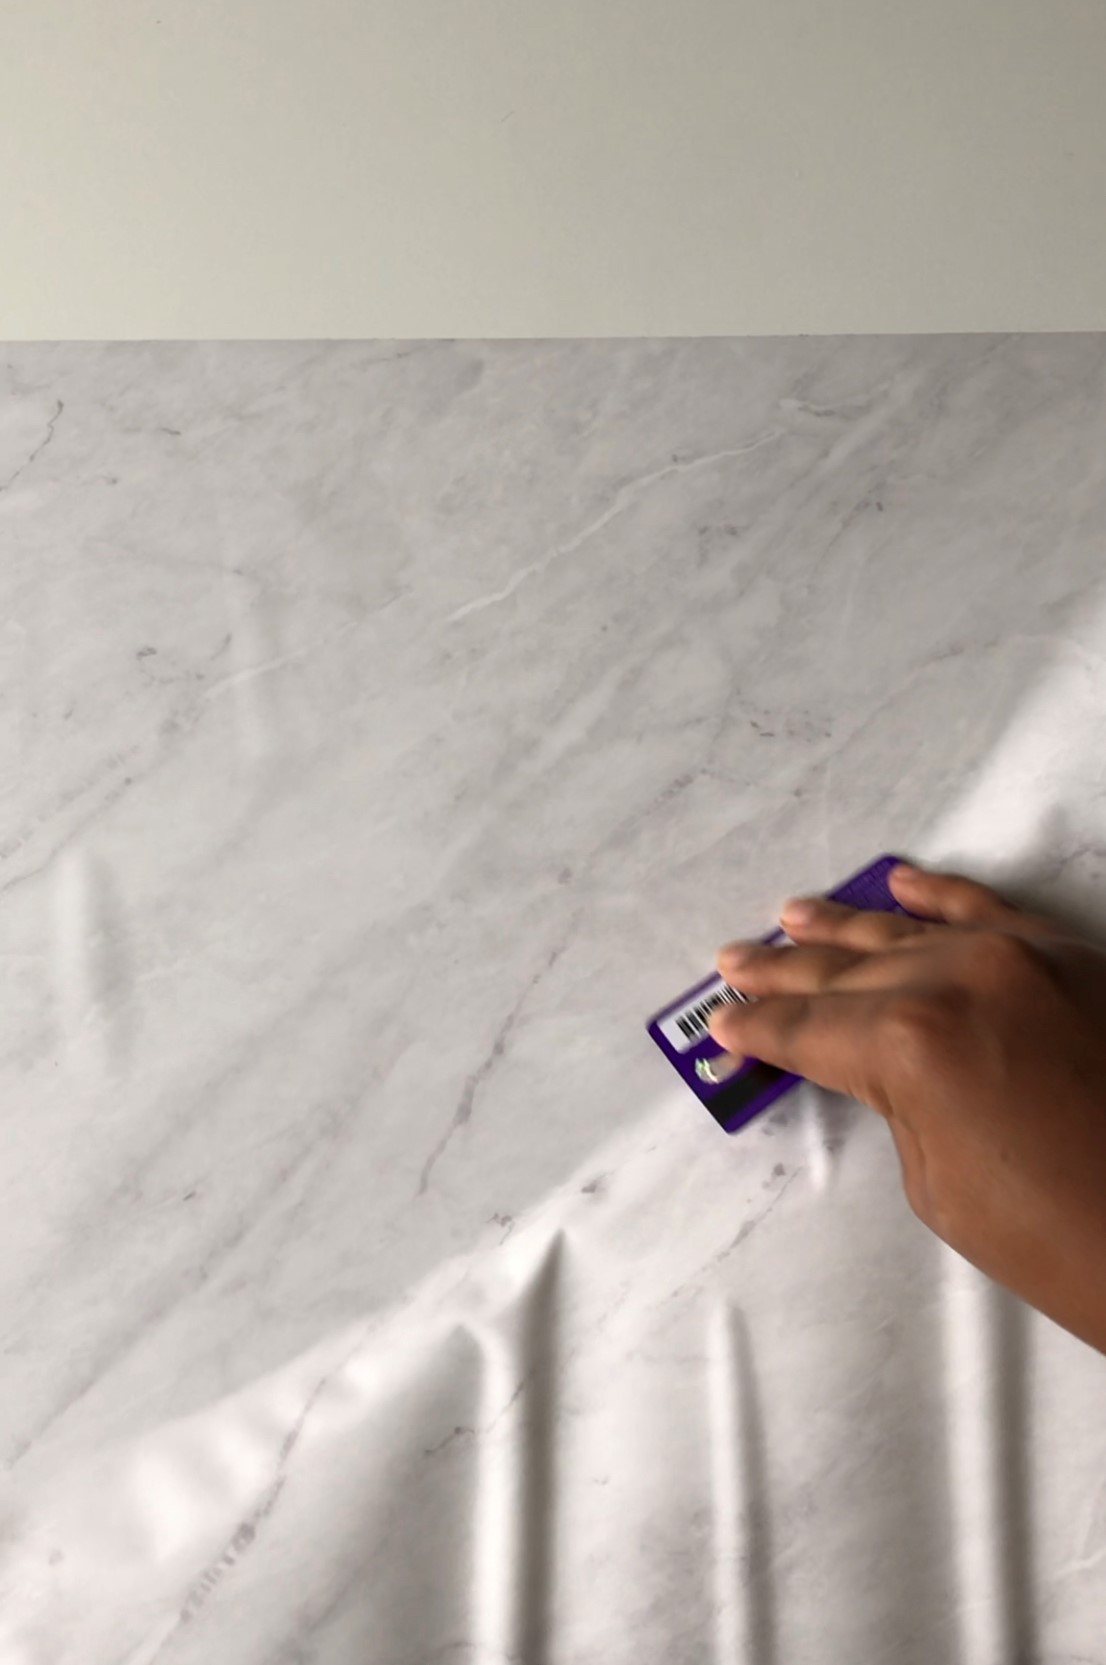 Medina smoothing the marble contact paper on to the table using a purple card